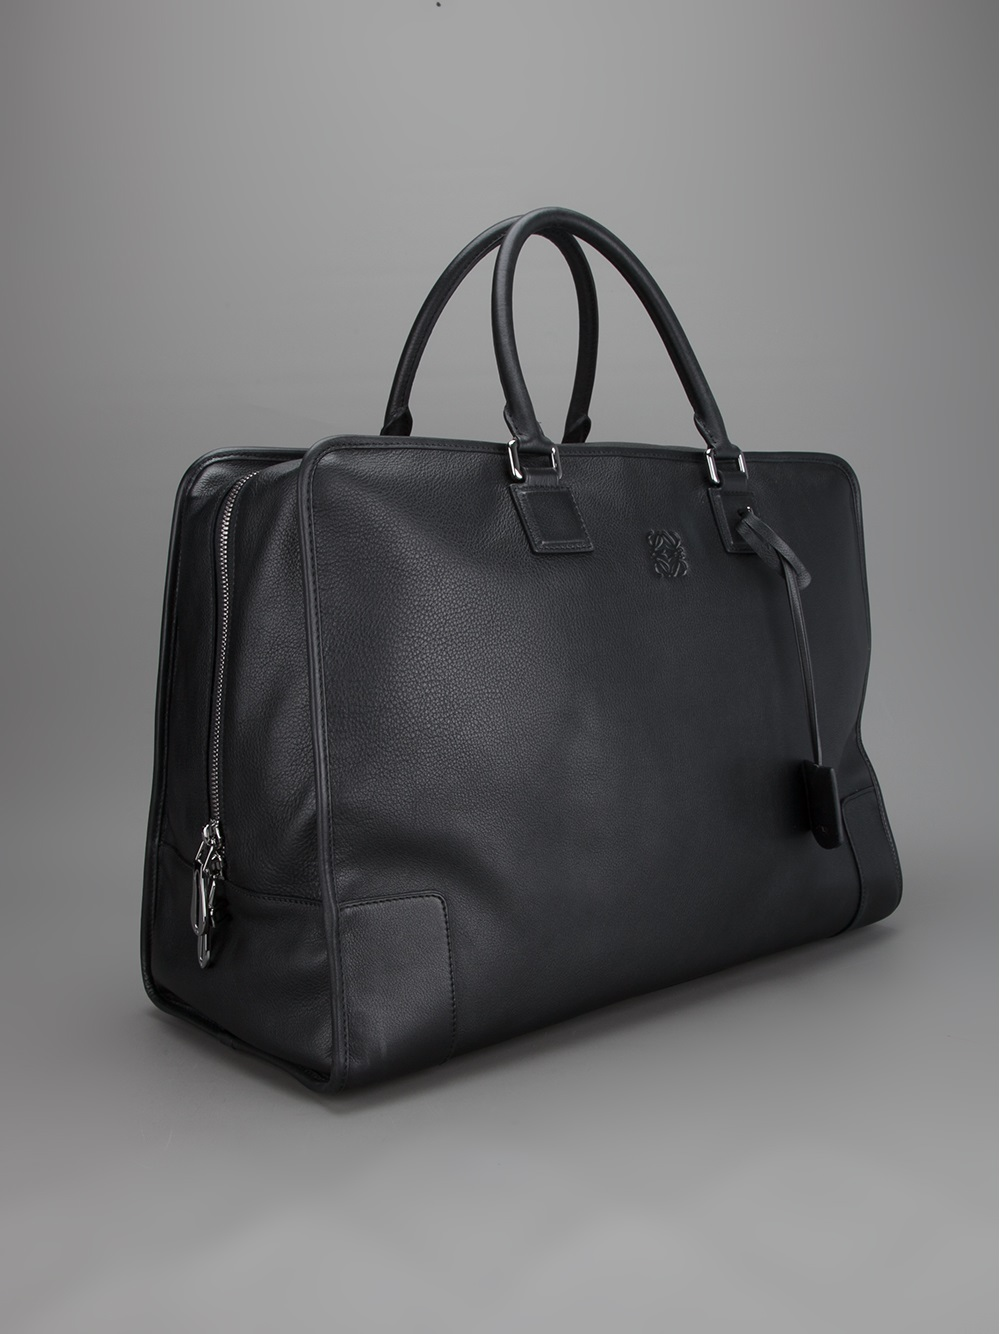 Loewe Amazona Weekender Bag in Black for Men